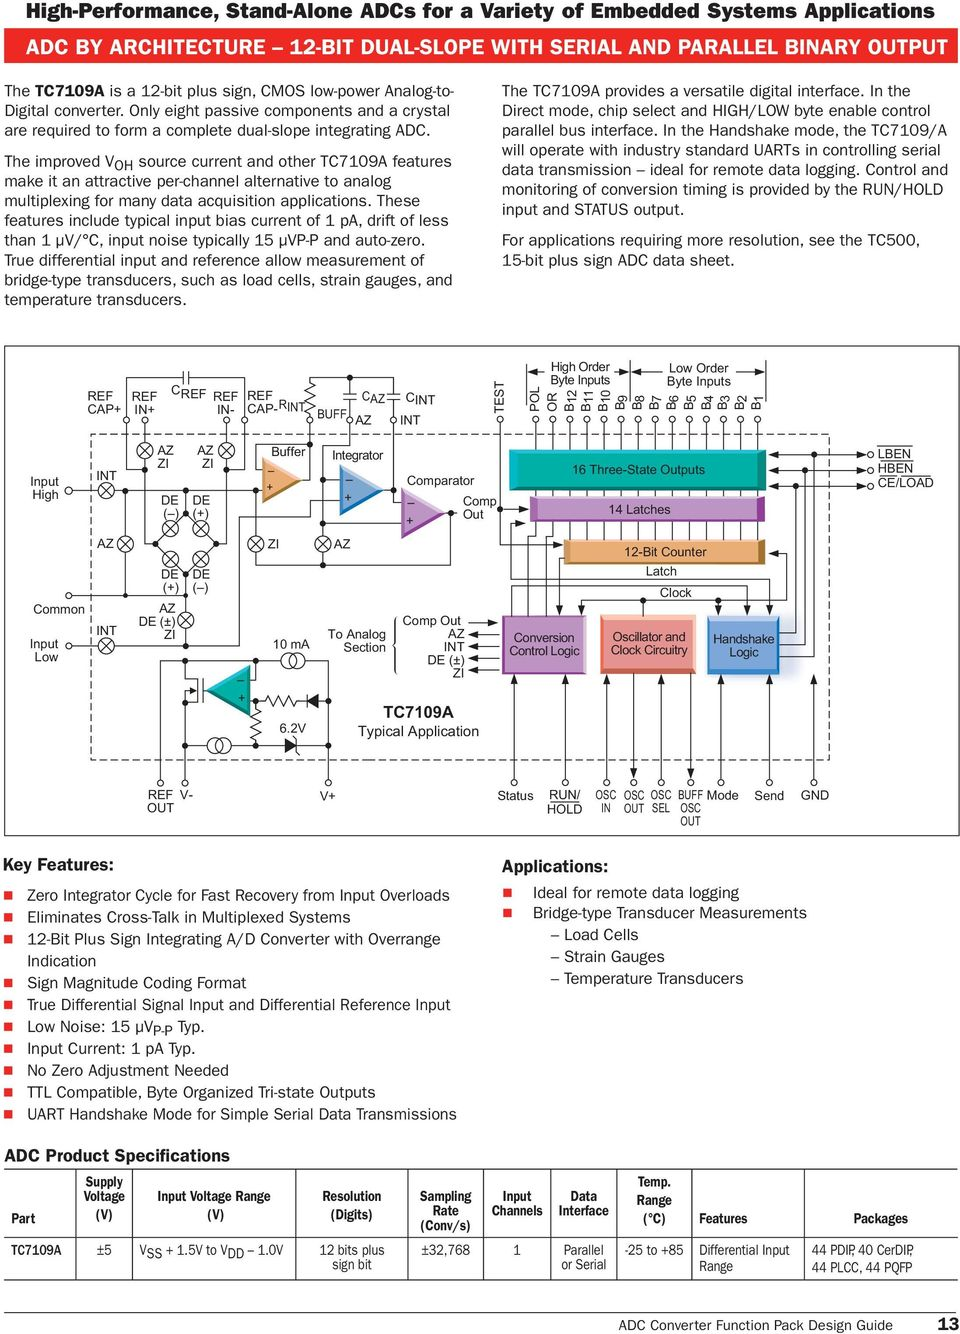 Analog To Digital Converter Design Guide Pdf The Project Is A Simple 12bit 8channel Improved V Oh Source Current And Other Tc7109a Features Make It An Attractive Per